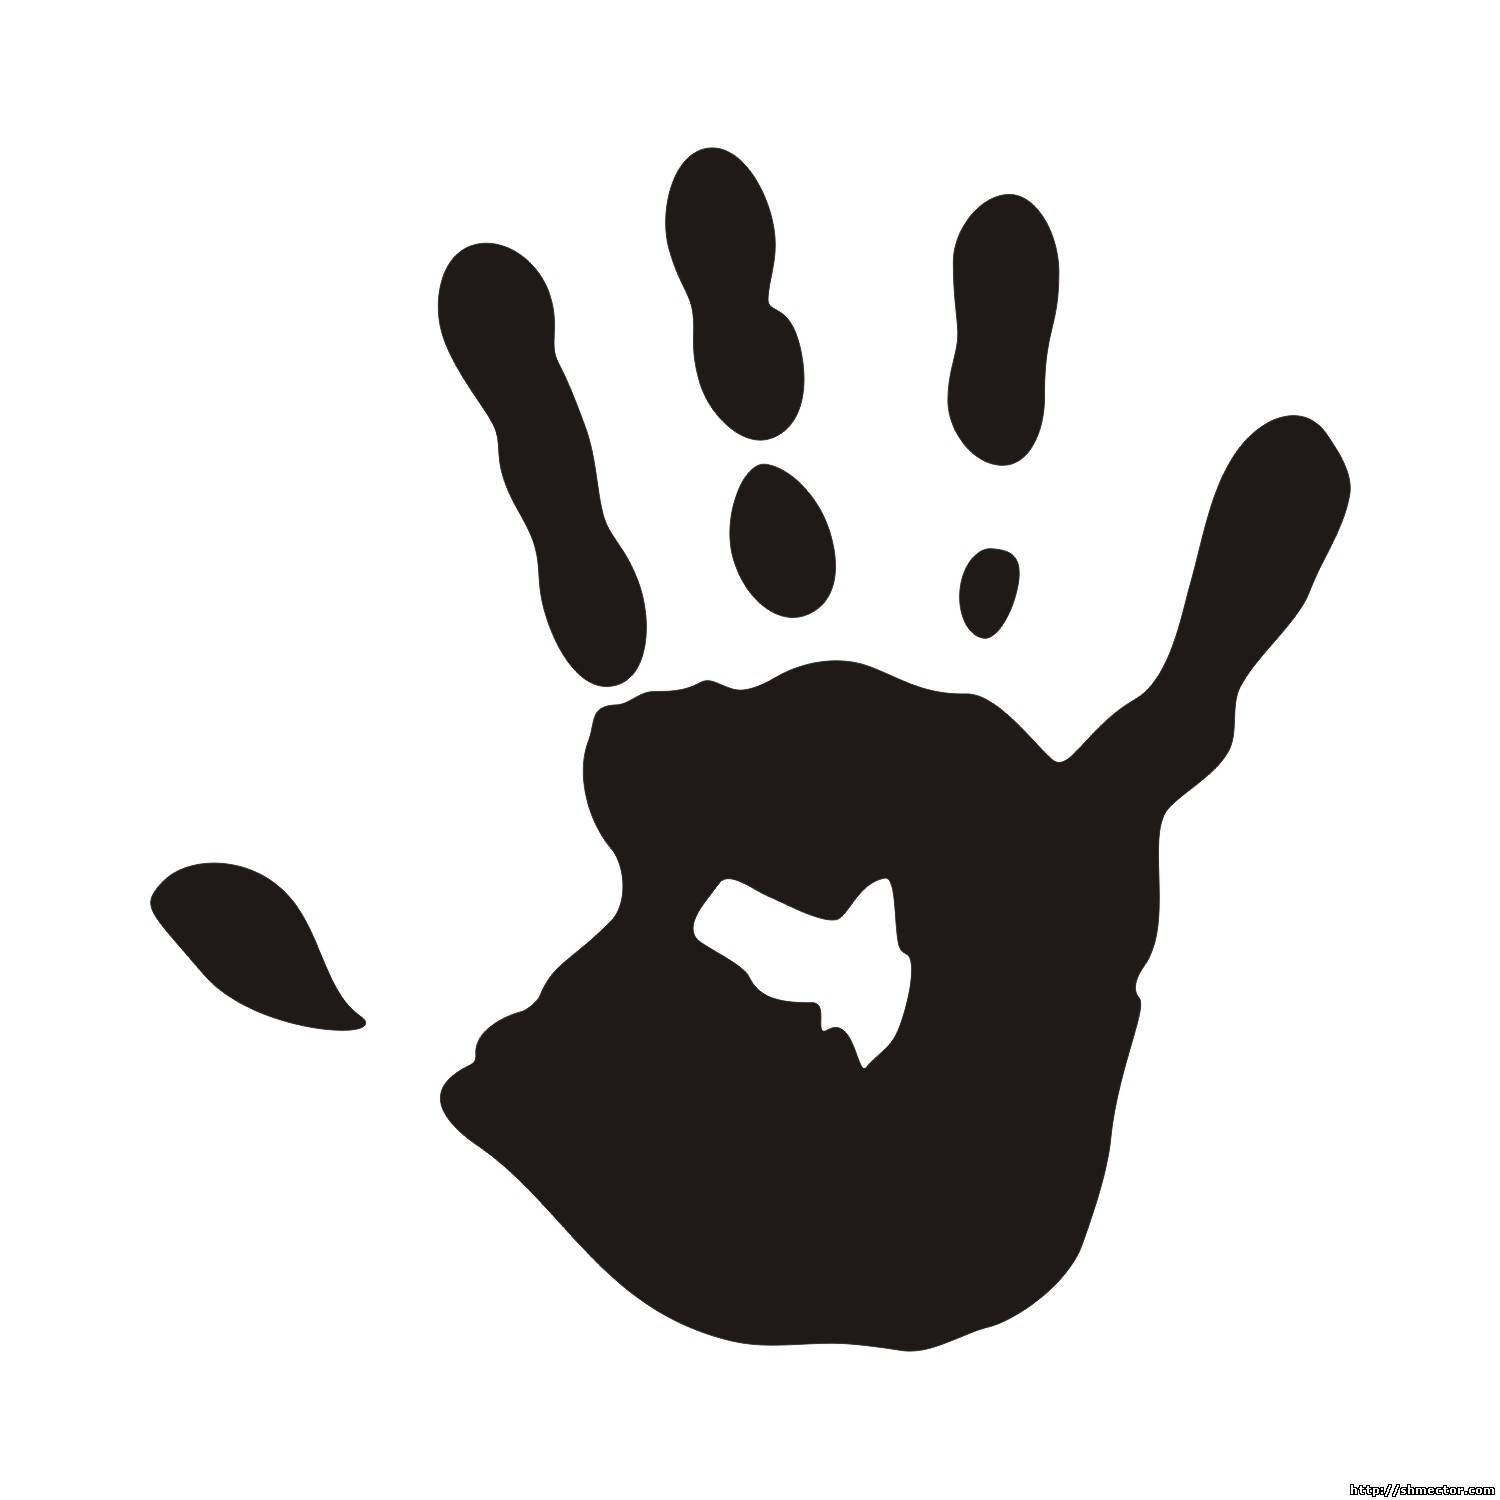 236x312 Free Black And White Clipart For Teachers 564x597 Handprint 1500x1500 Vector Baby